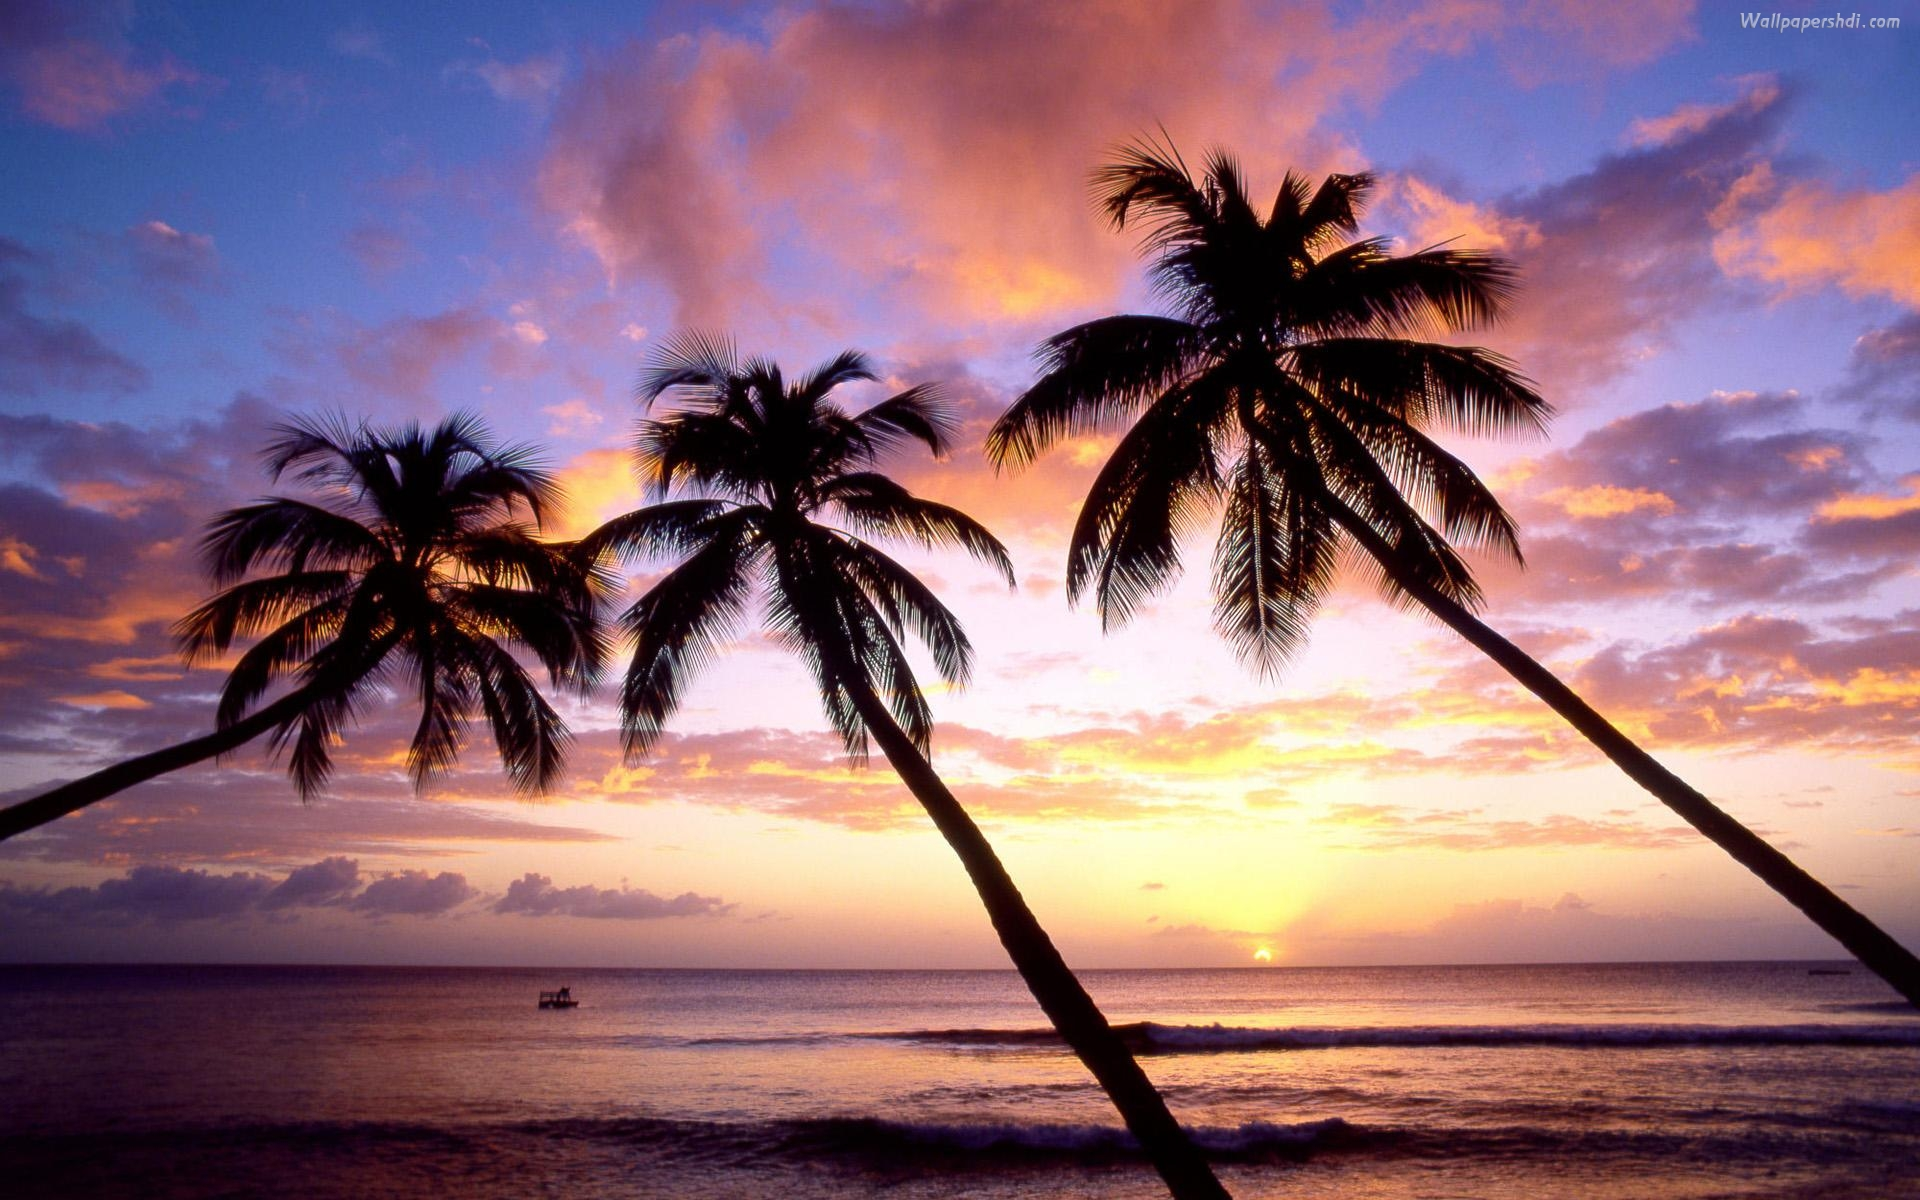 Palm Tree Sunset Wallpaper Images amp Pictures   Becuo 1920x1200